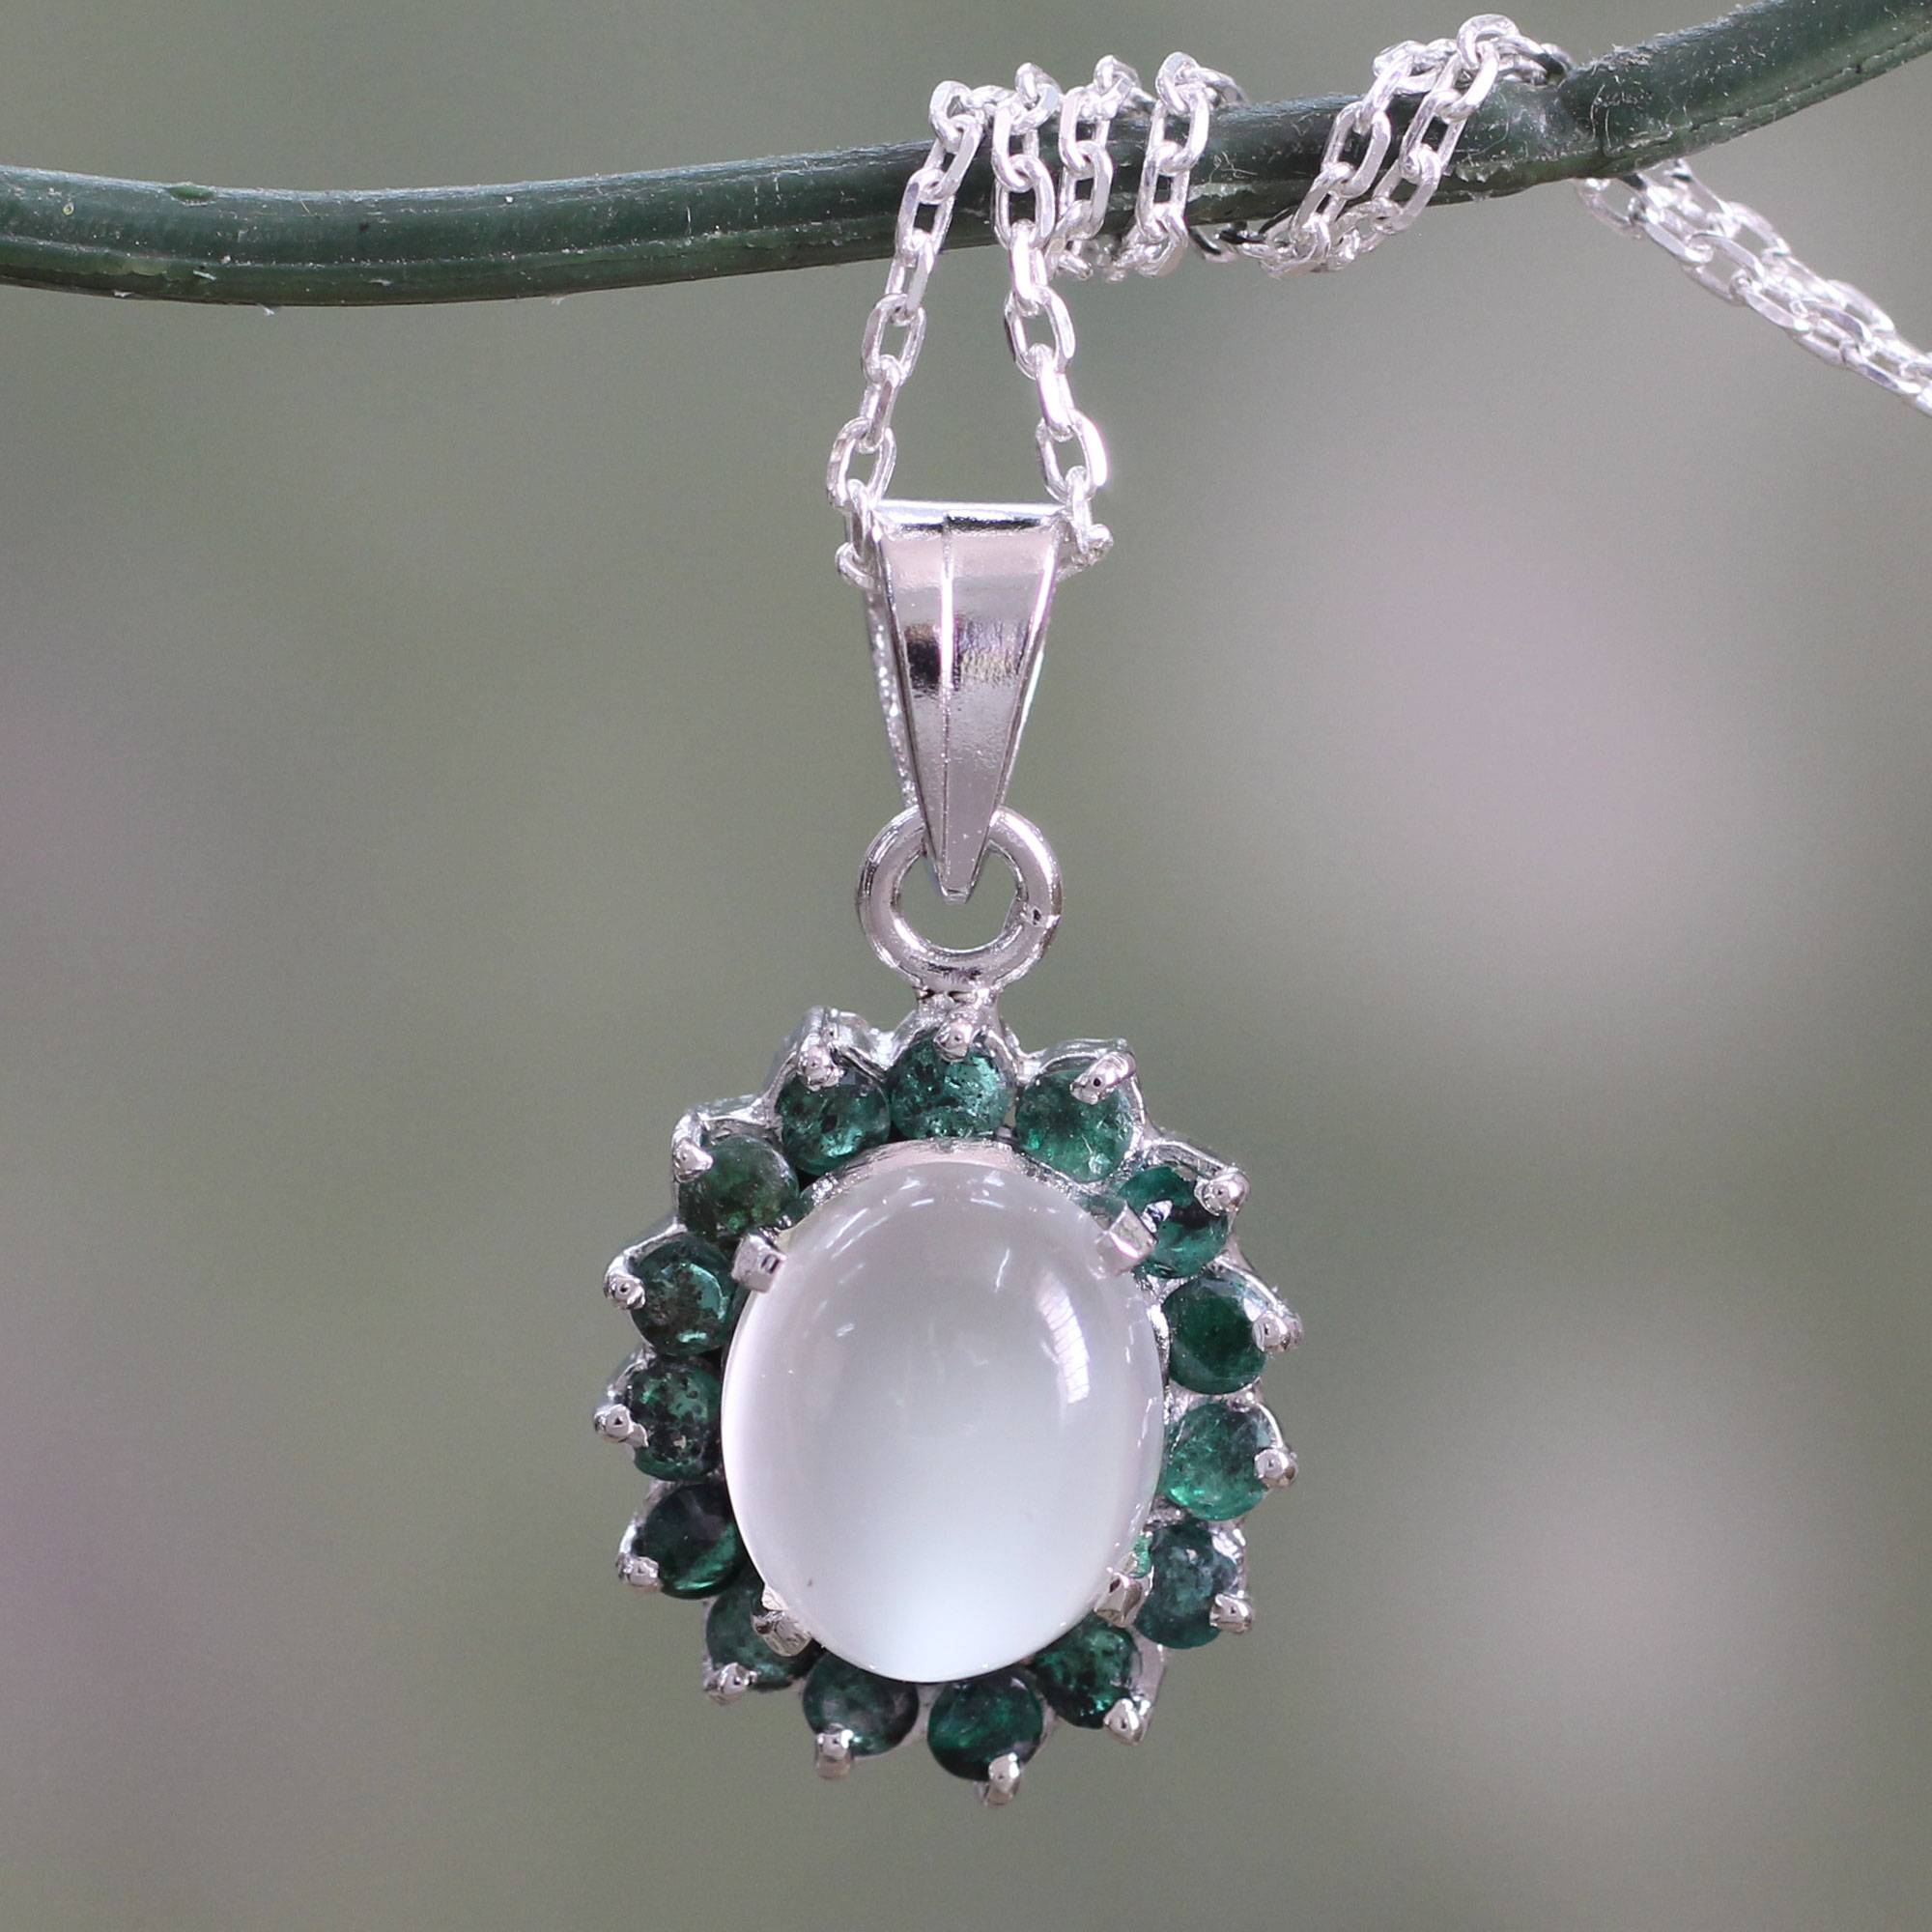 Pearl Jewellery Necklace >> Unicef UK Market | Sterling Silver Necklace with Emerald and Moonstone - Love and Devotion